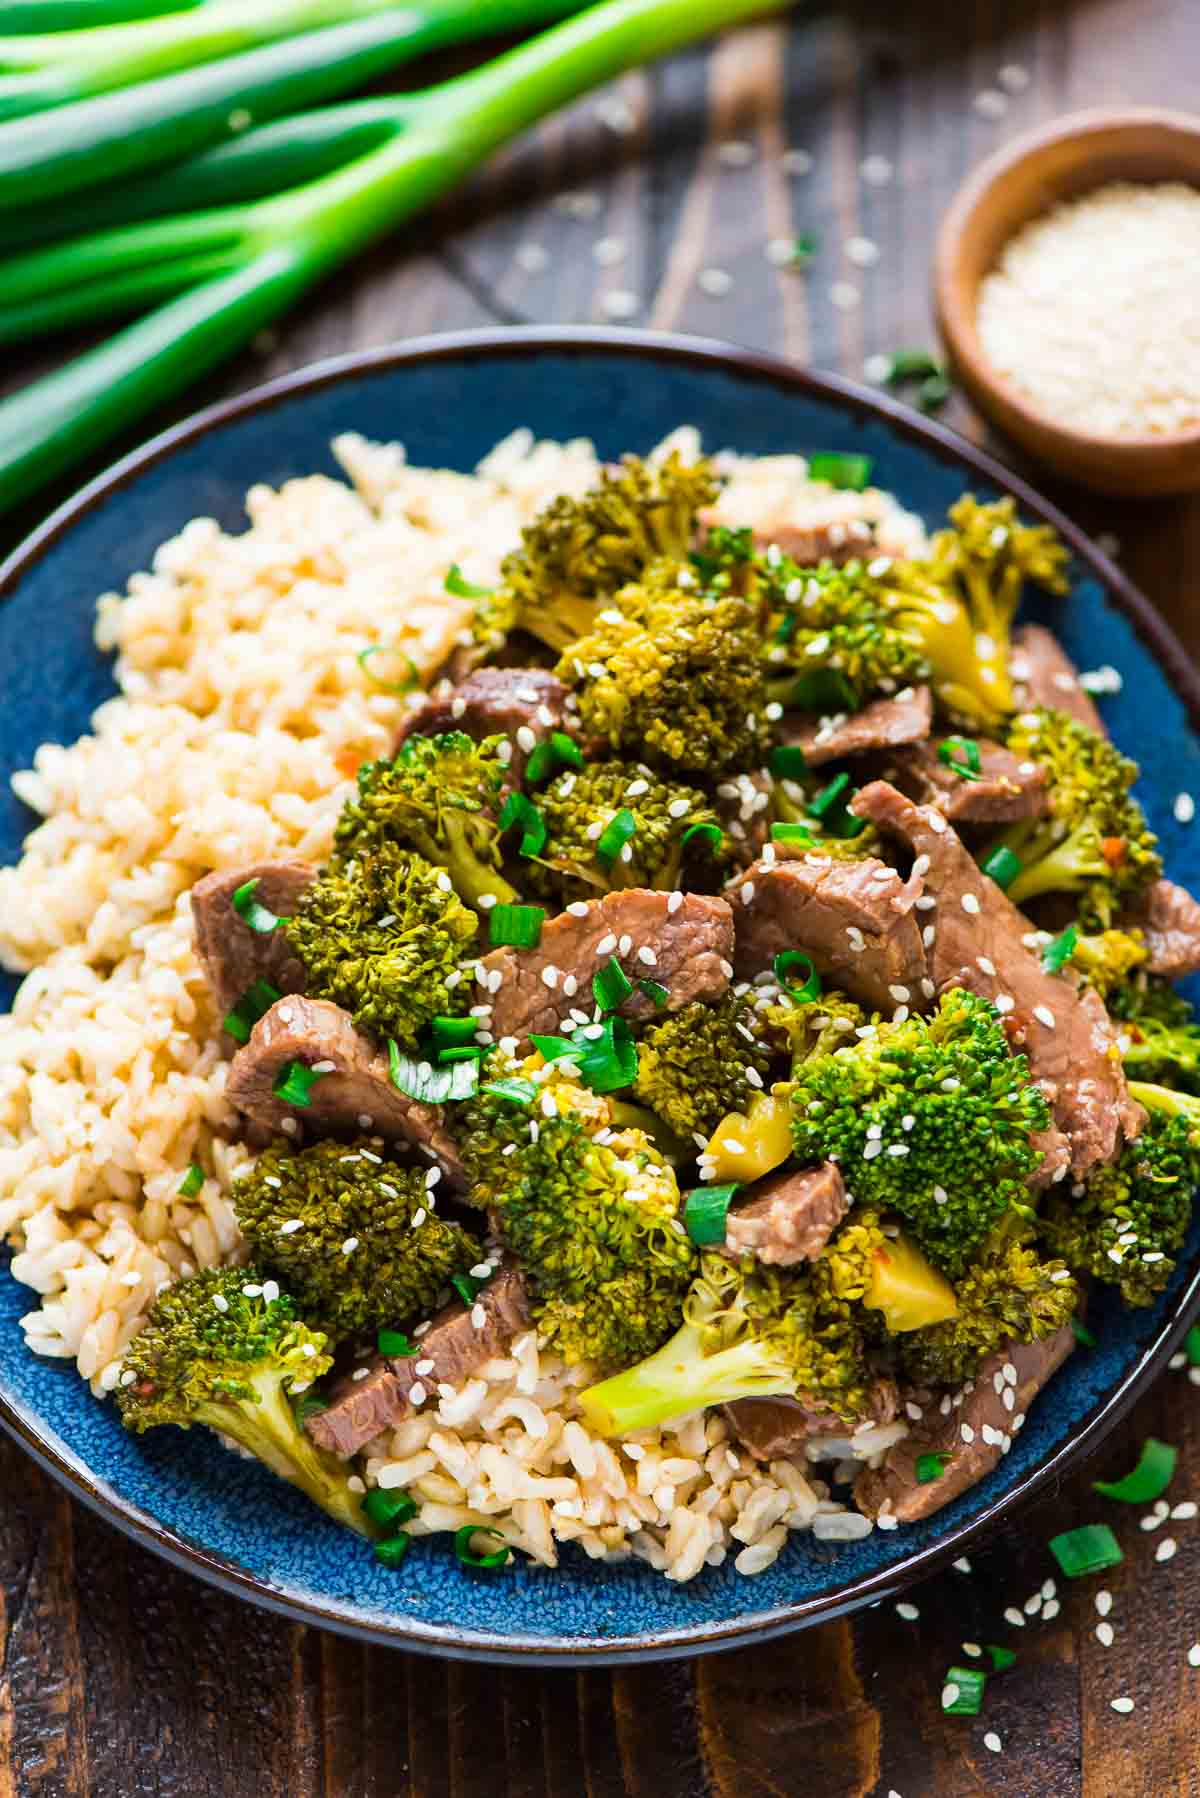 30 Days of Healthy Slow Cooker Dinner Recipes - Slow Cooker Beef and Broccoli via Well Plated   https://www.roseclearfield.com